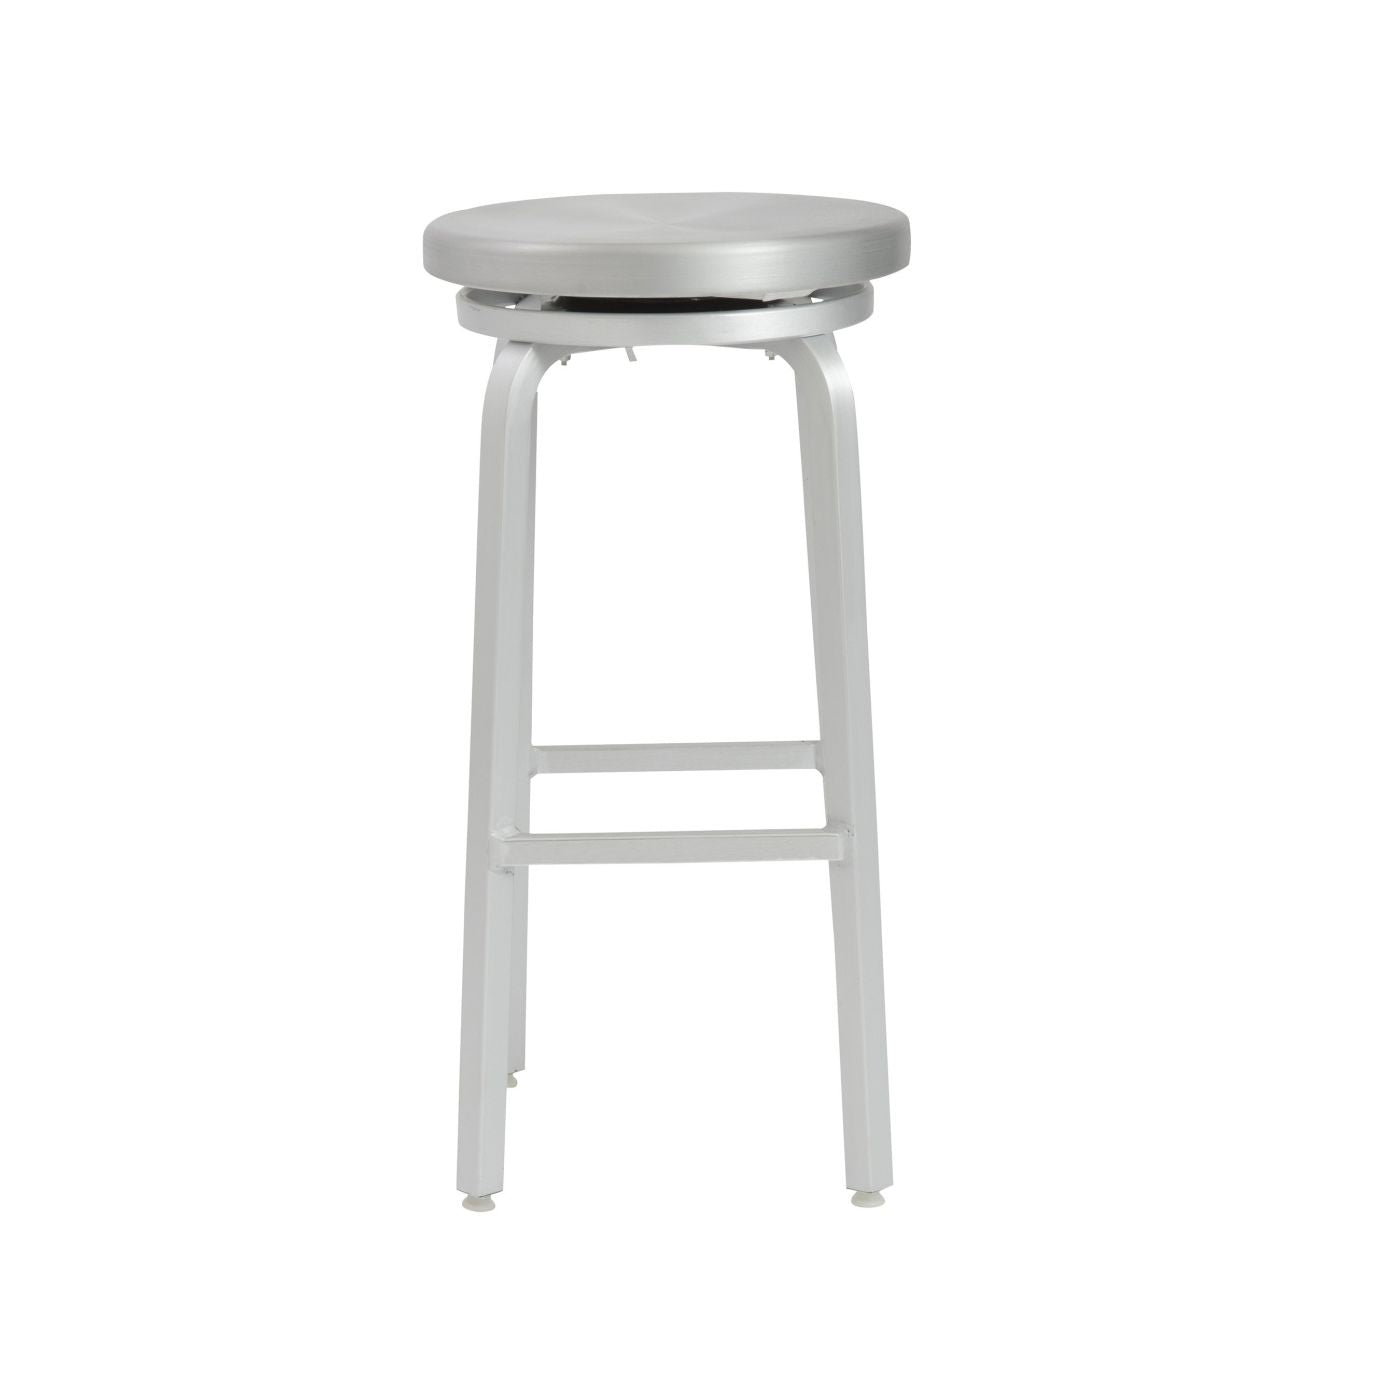 Strange Buy Euro Style Euro 4212 Miller Swivel Bar Stool In Matte Aluminum At Contemporary Furniture Warehouse Andrewgaddart Wooden Chair Designs For Living Room Andrewgaddartcom